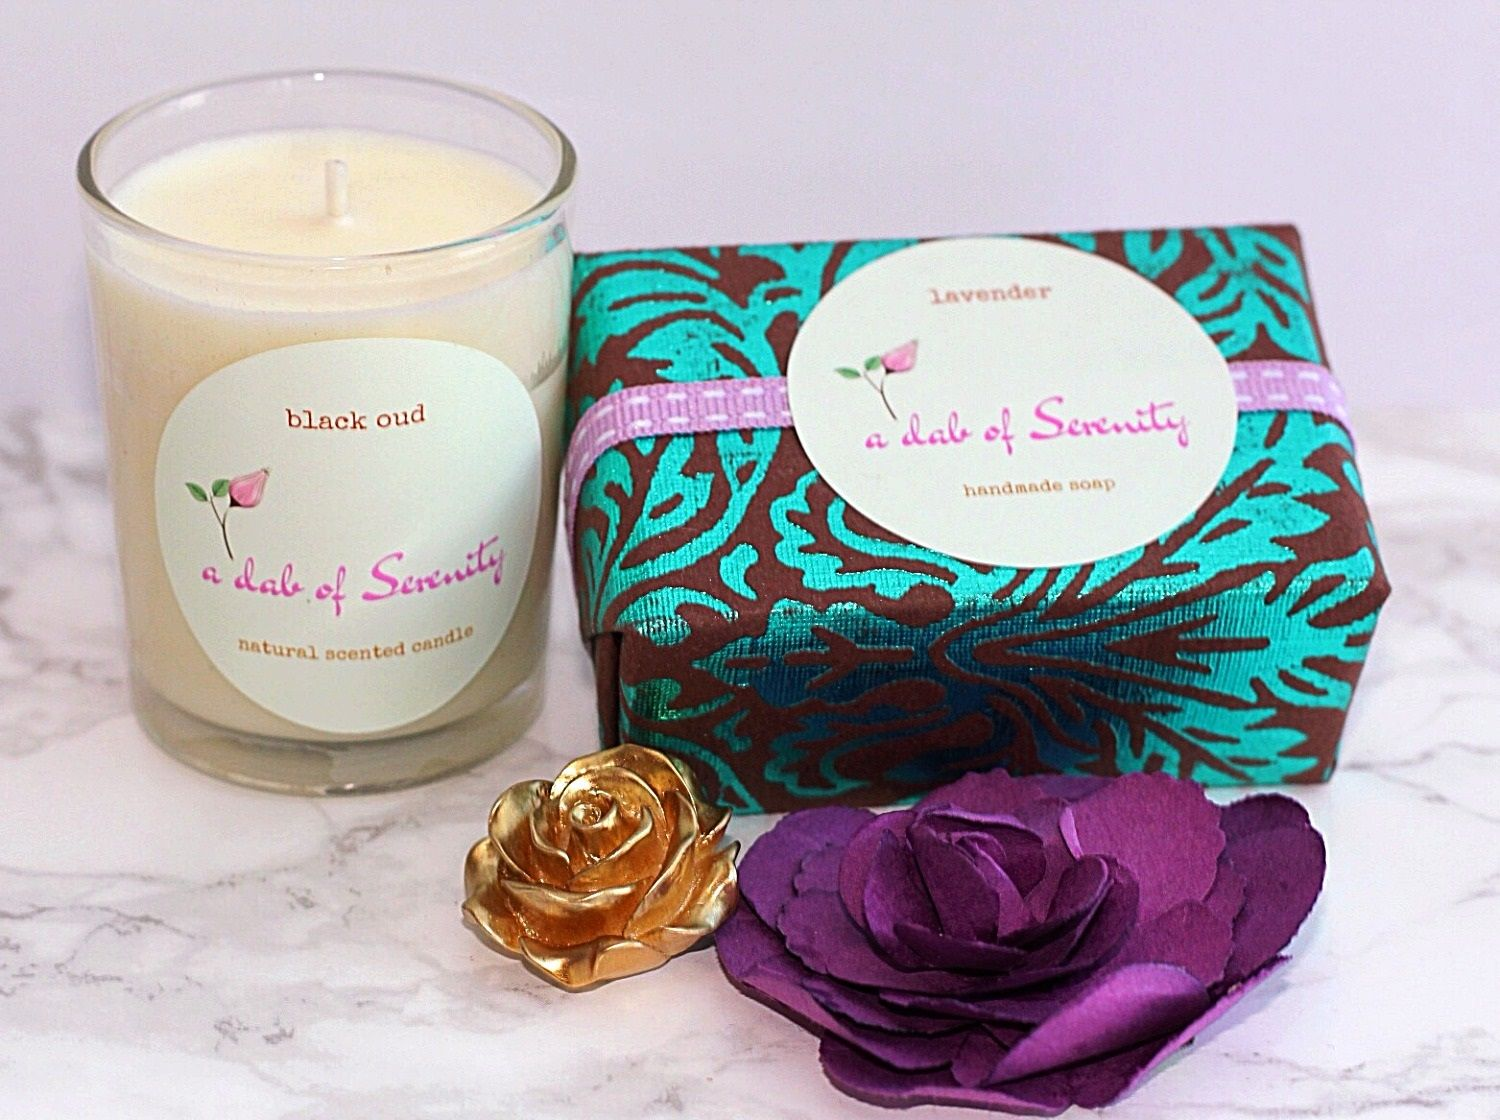 Black oud scented candle lavender natural soaphome